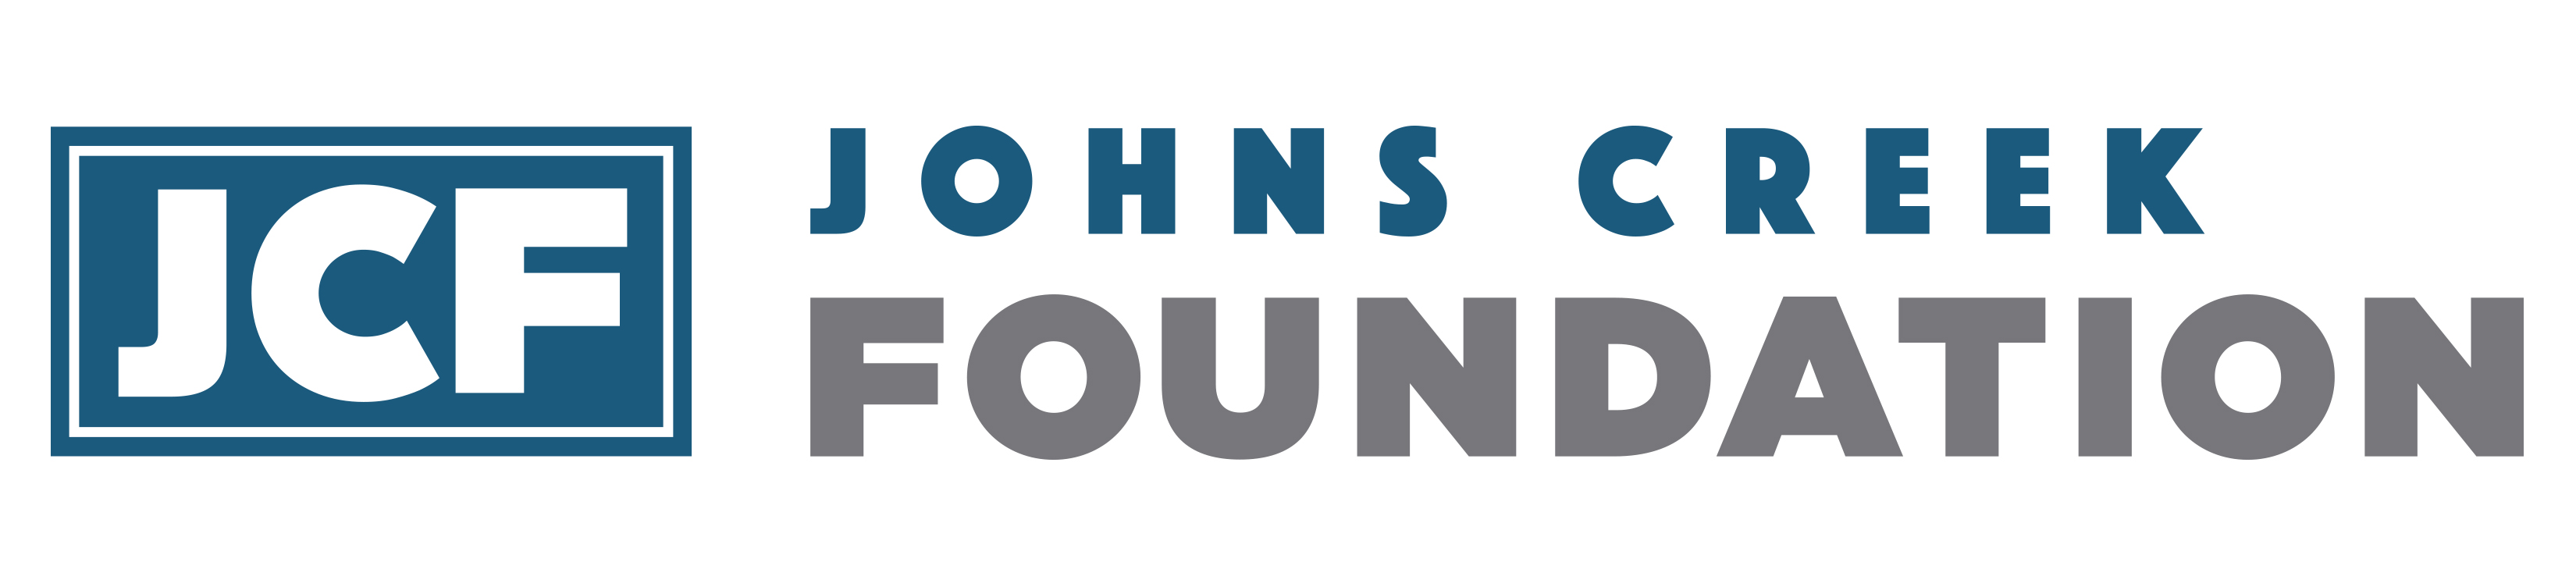 Johns Creek Foundation